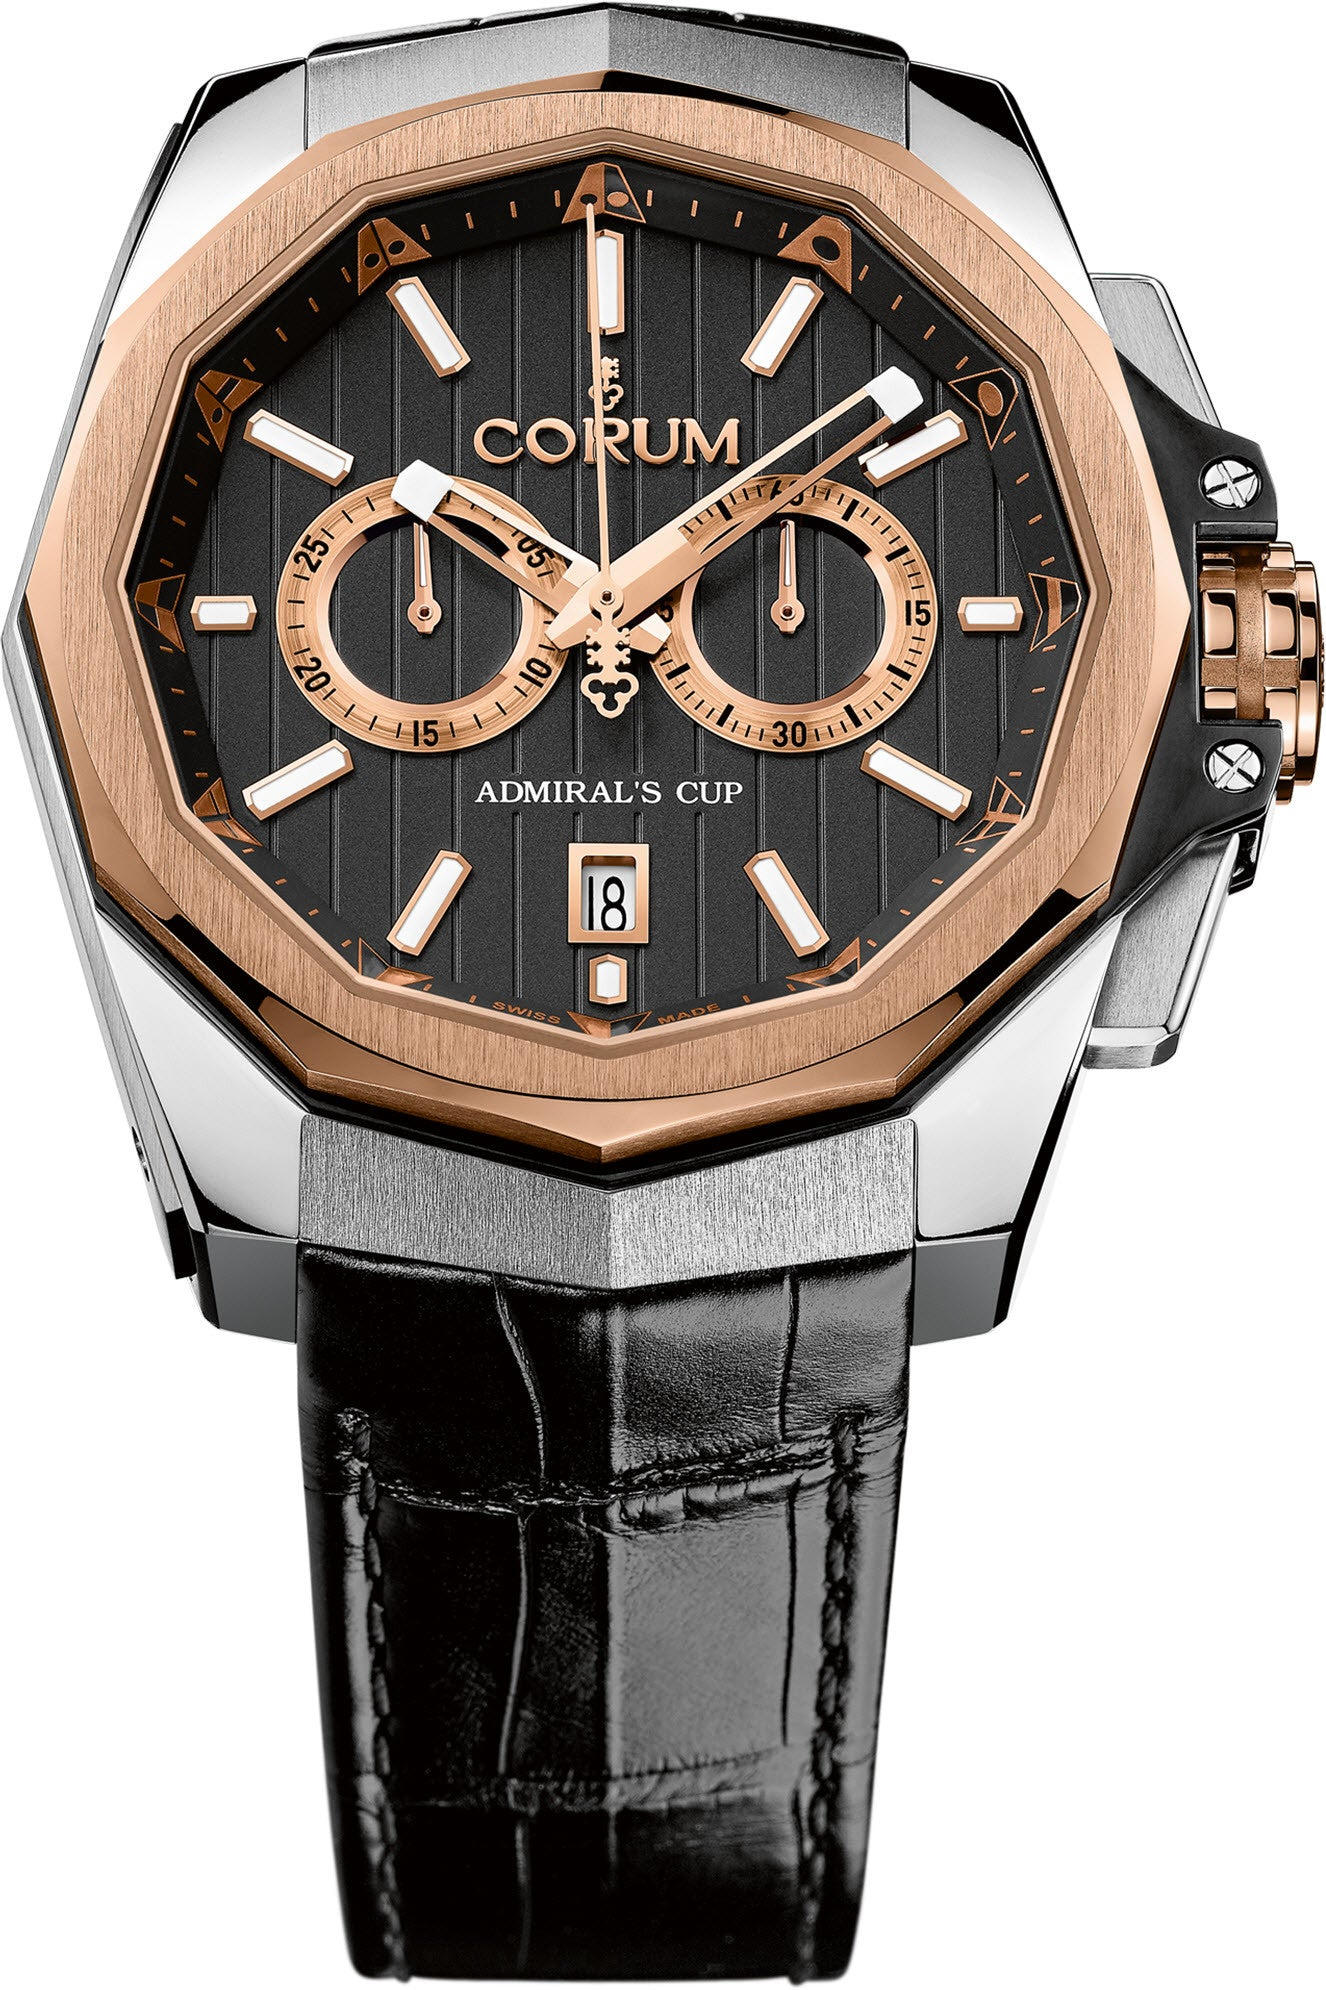 Bargain Corum Watch Admirals Cup AC-One 45 Chronograph Stockists